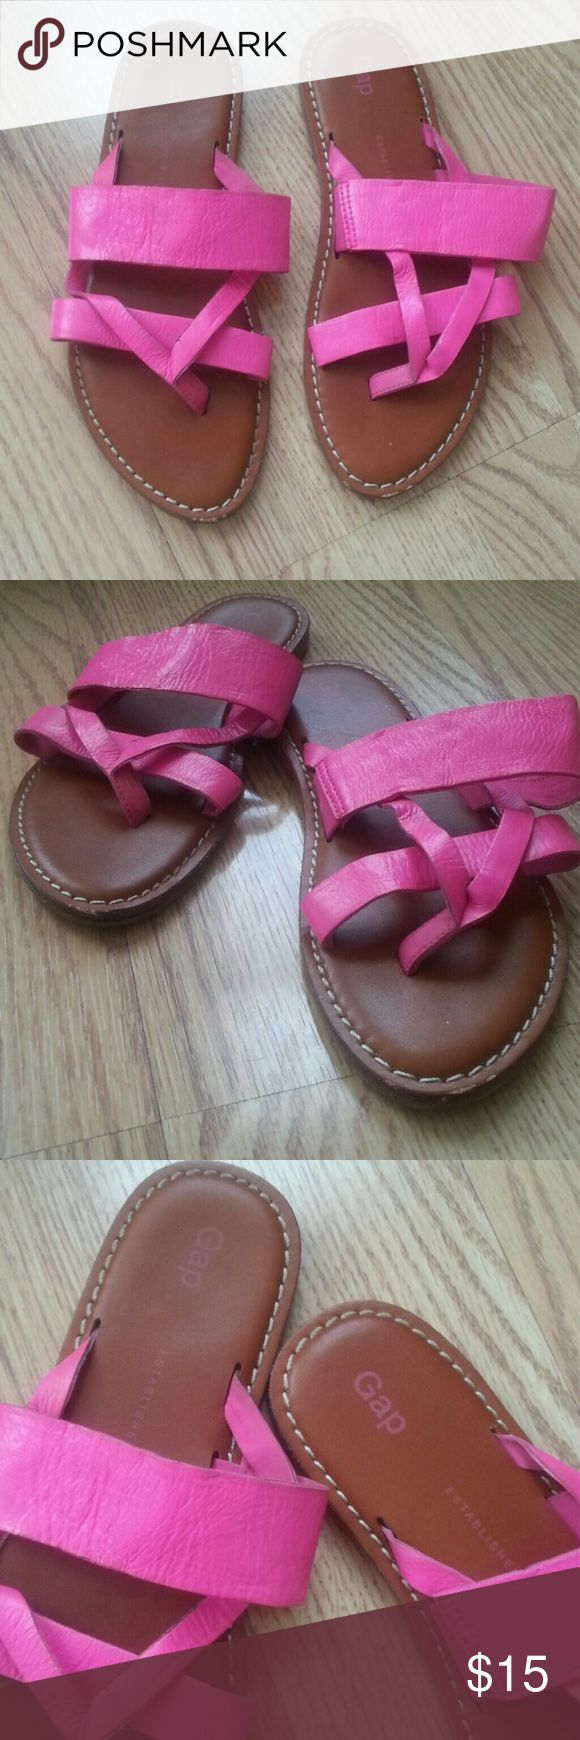 Gap  pink neon  flats Worn  twice ,minor scratches on tips GAP Shoes Flats & Loafers